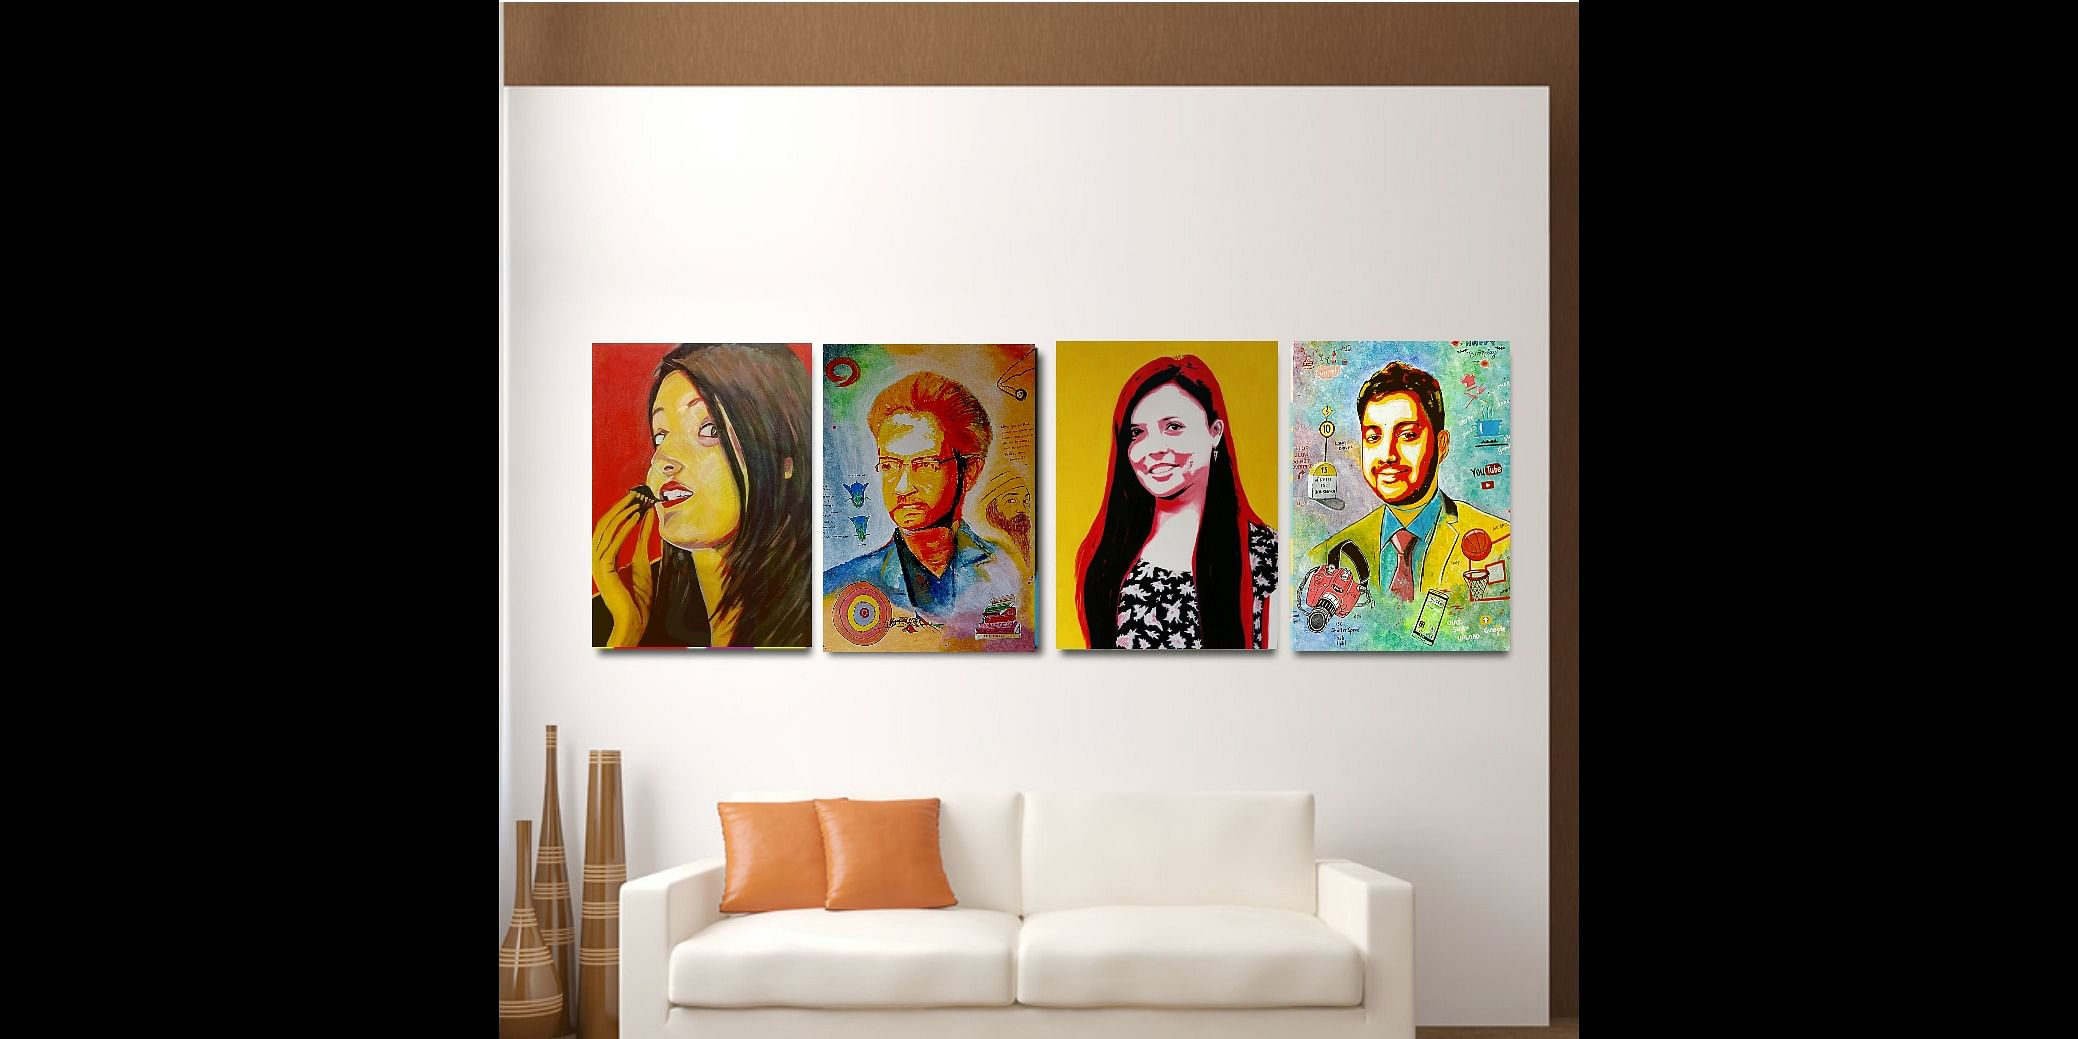 Beautiful pop retro art customized for specific gifting needs